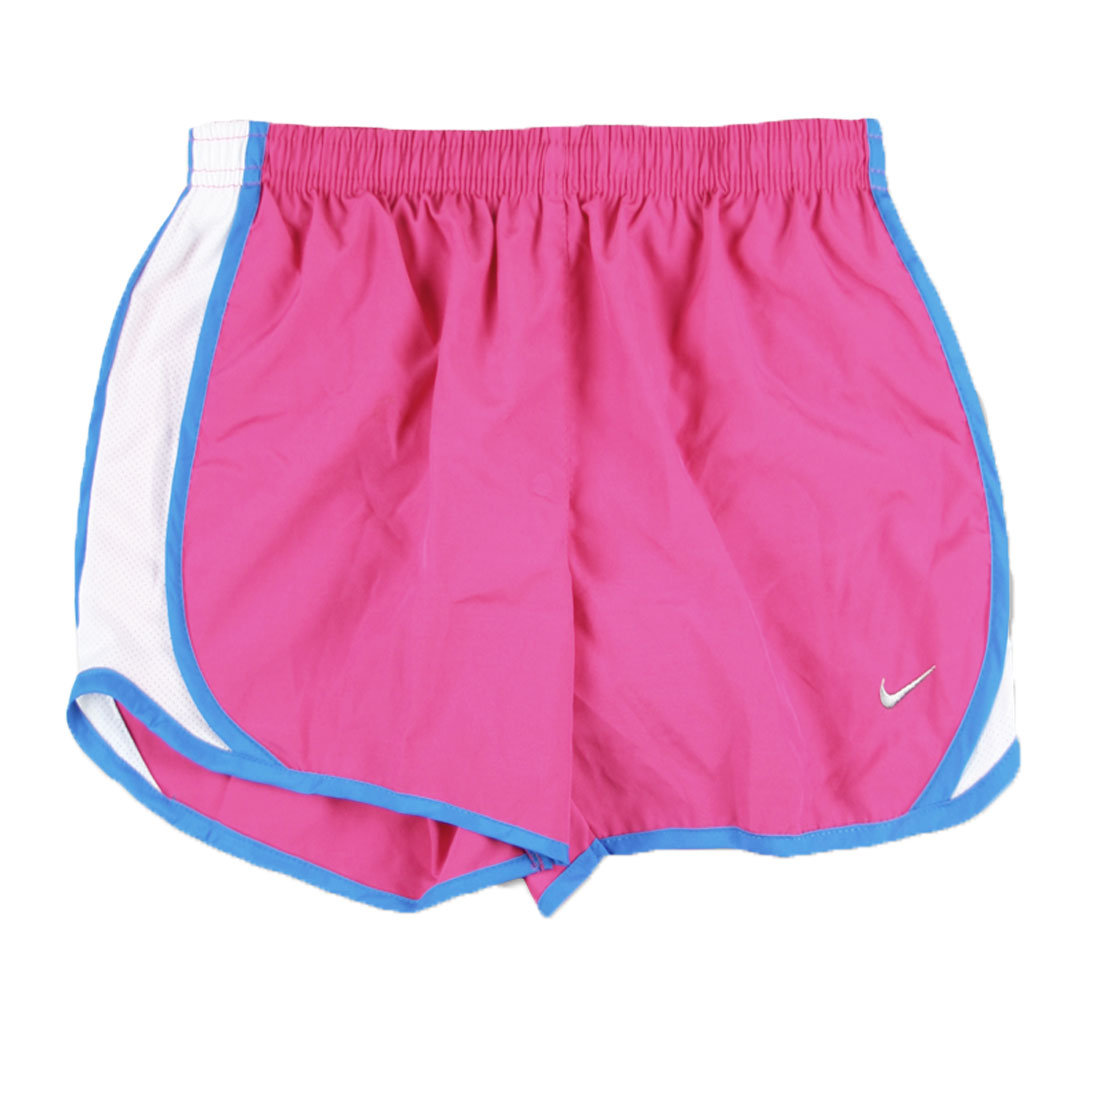 Find Men's Shorts at senonsdownload-gv.cf Enjoy free shipping and returns with NikePlus.